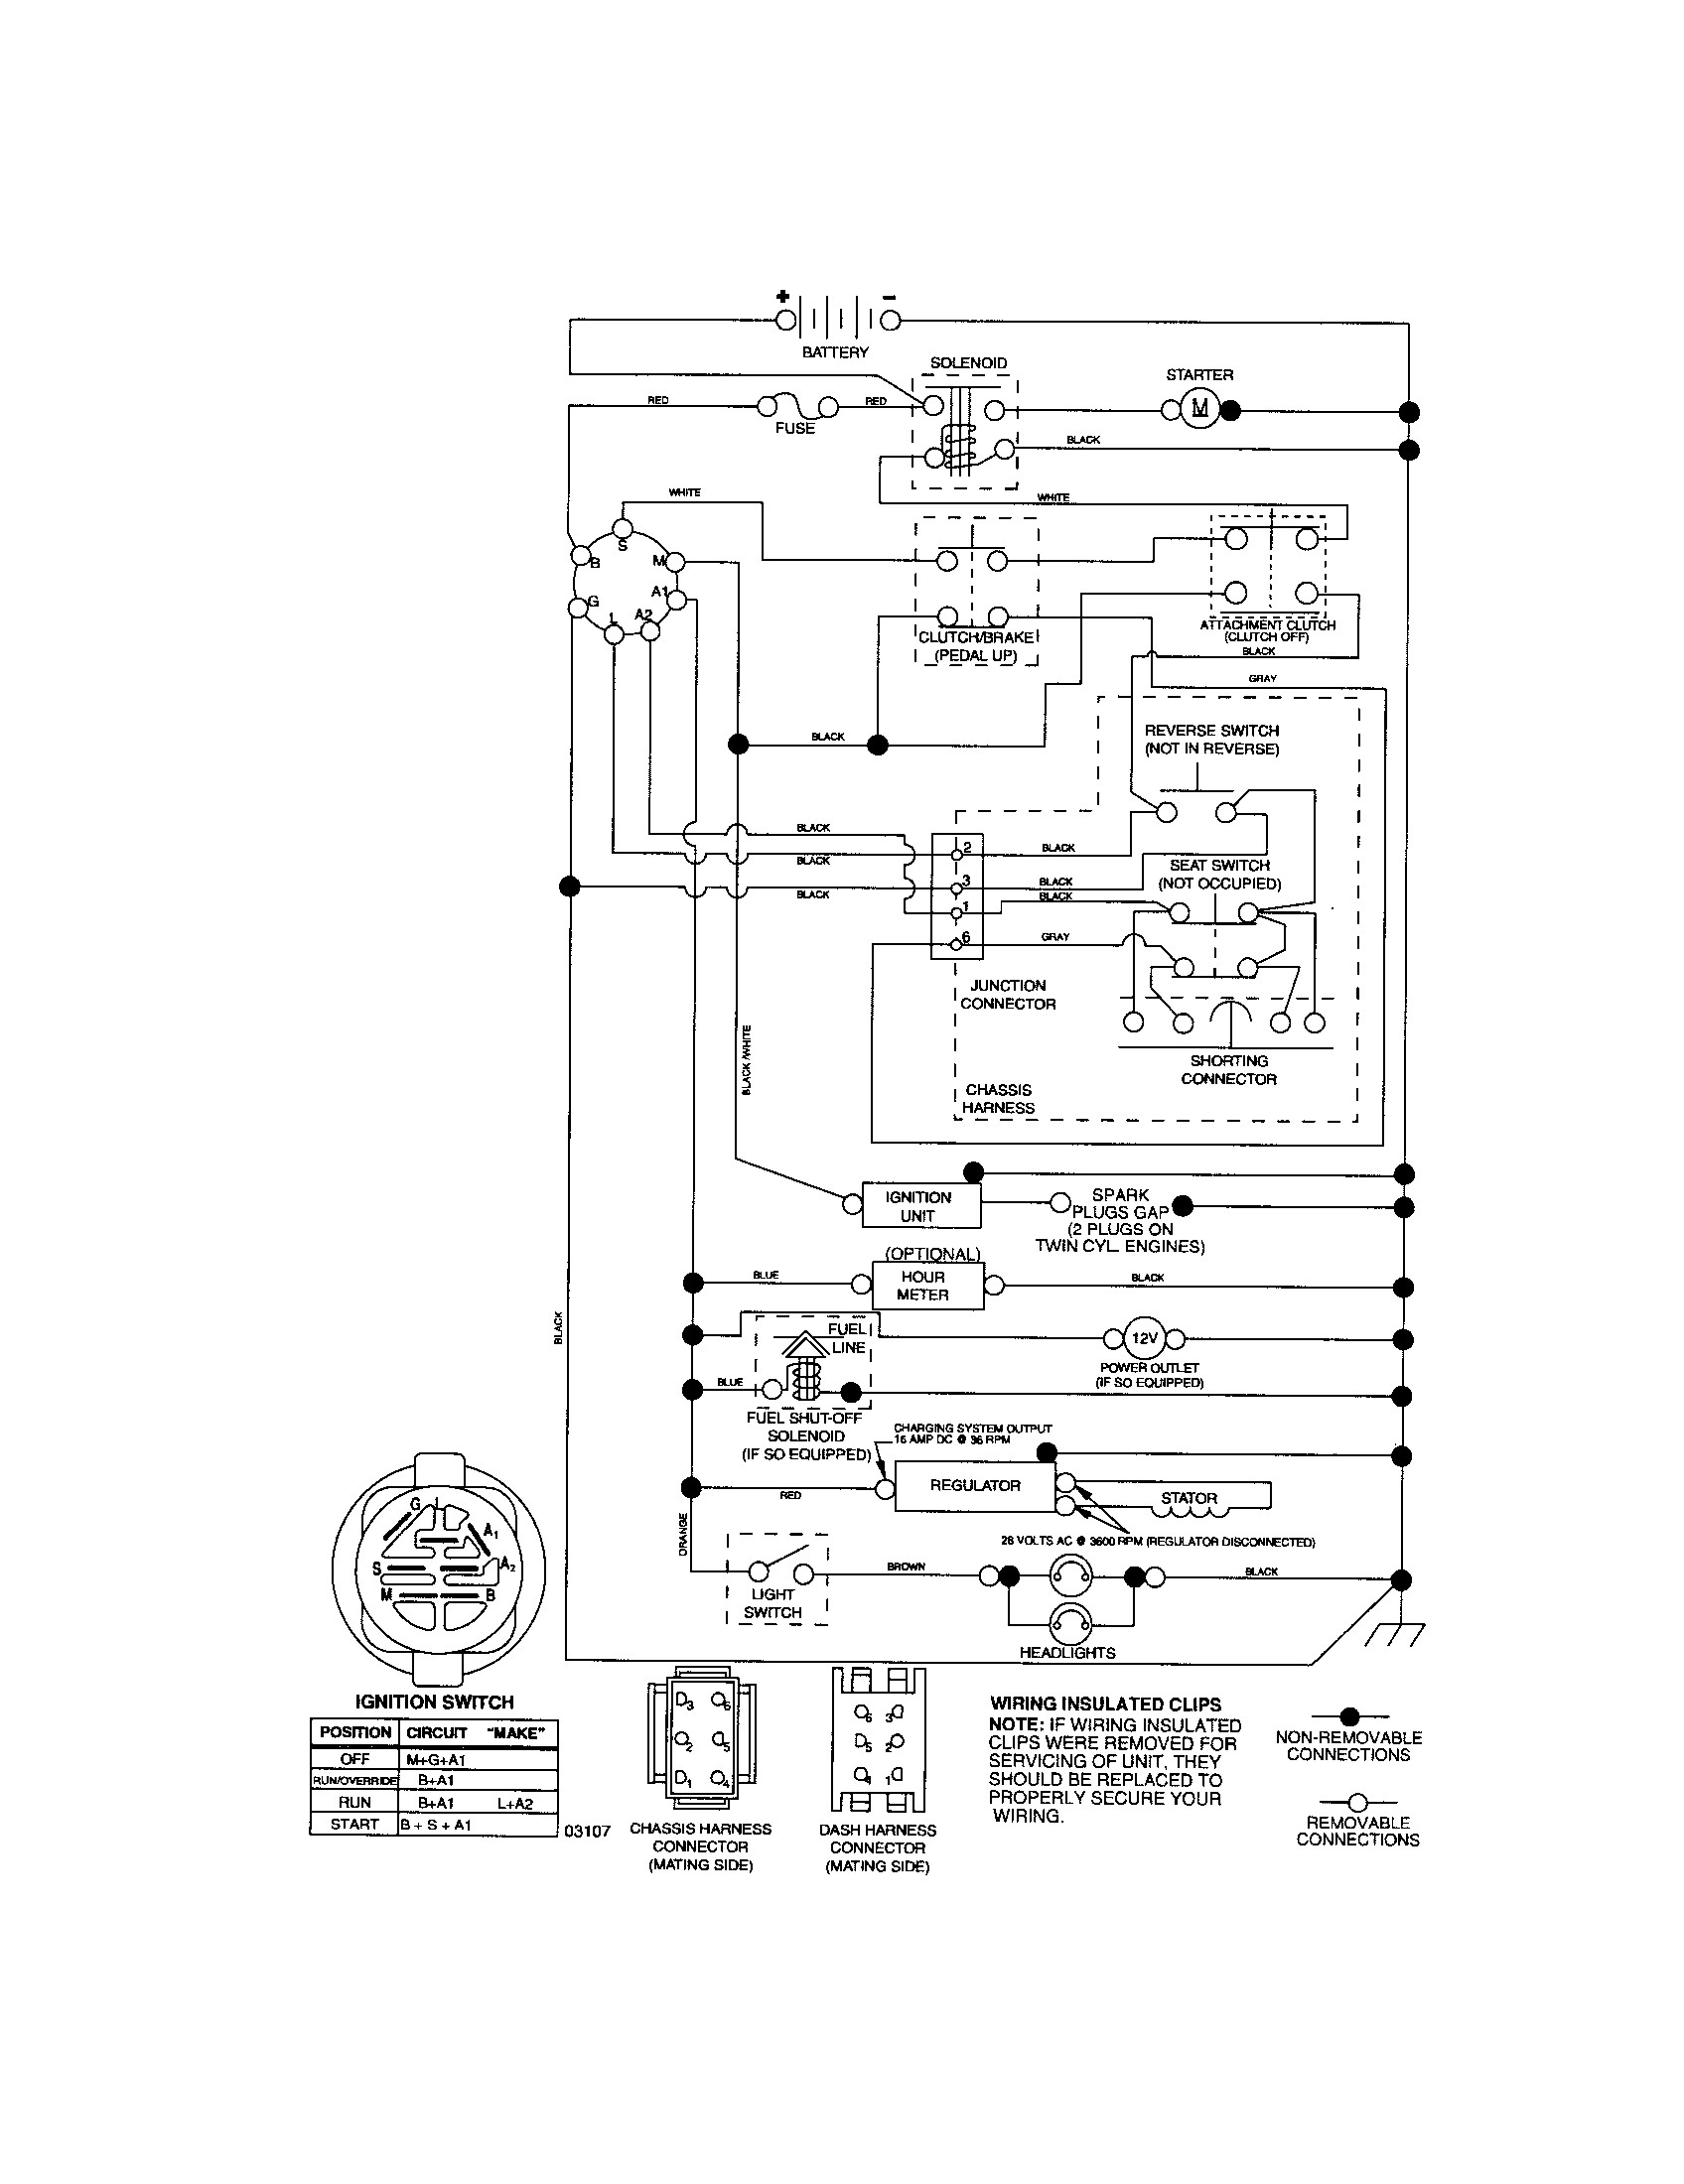 Honda Small Engine Carburetor Diagram Craftsman Riding Mower Electrical Diagram Of Honda Small Engine Carburetor Diagram Honda Gcv160 Carburetor Diagram – 917 Craftsman 17 Hp 42 Inch Mower